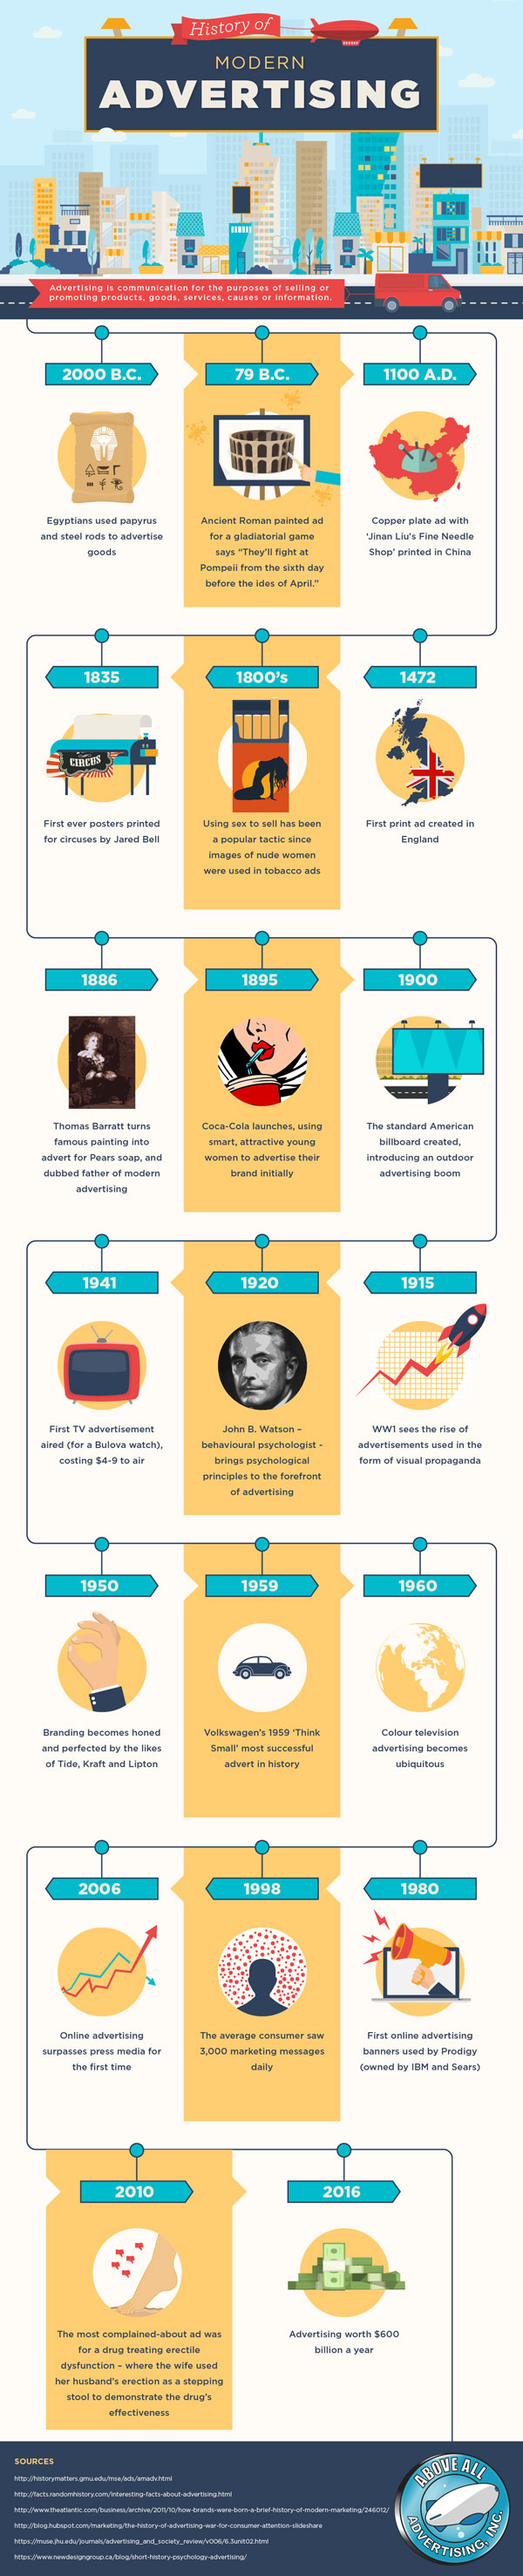 History-of-Modern-Advertising